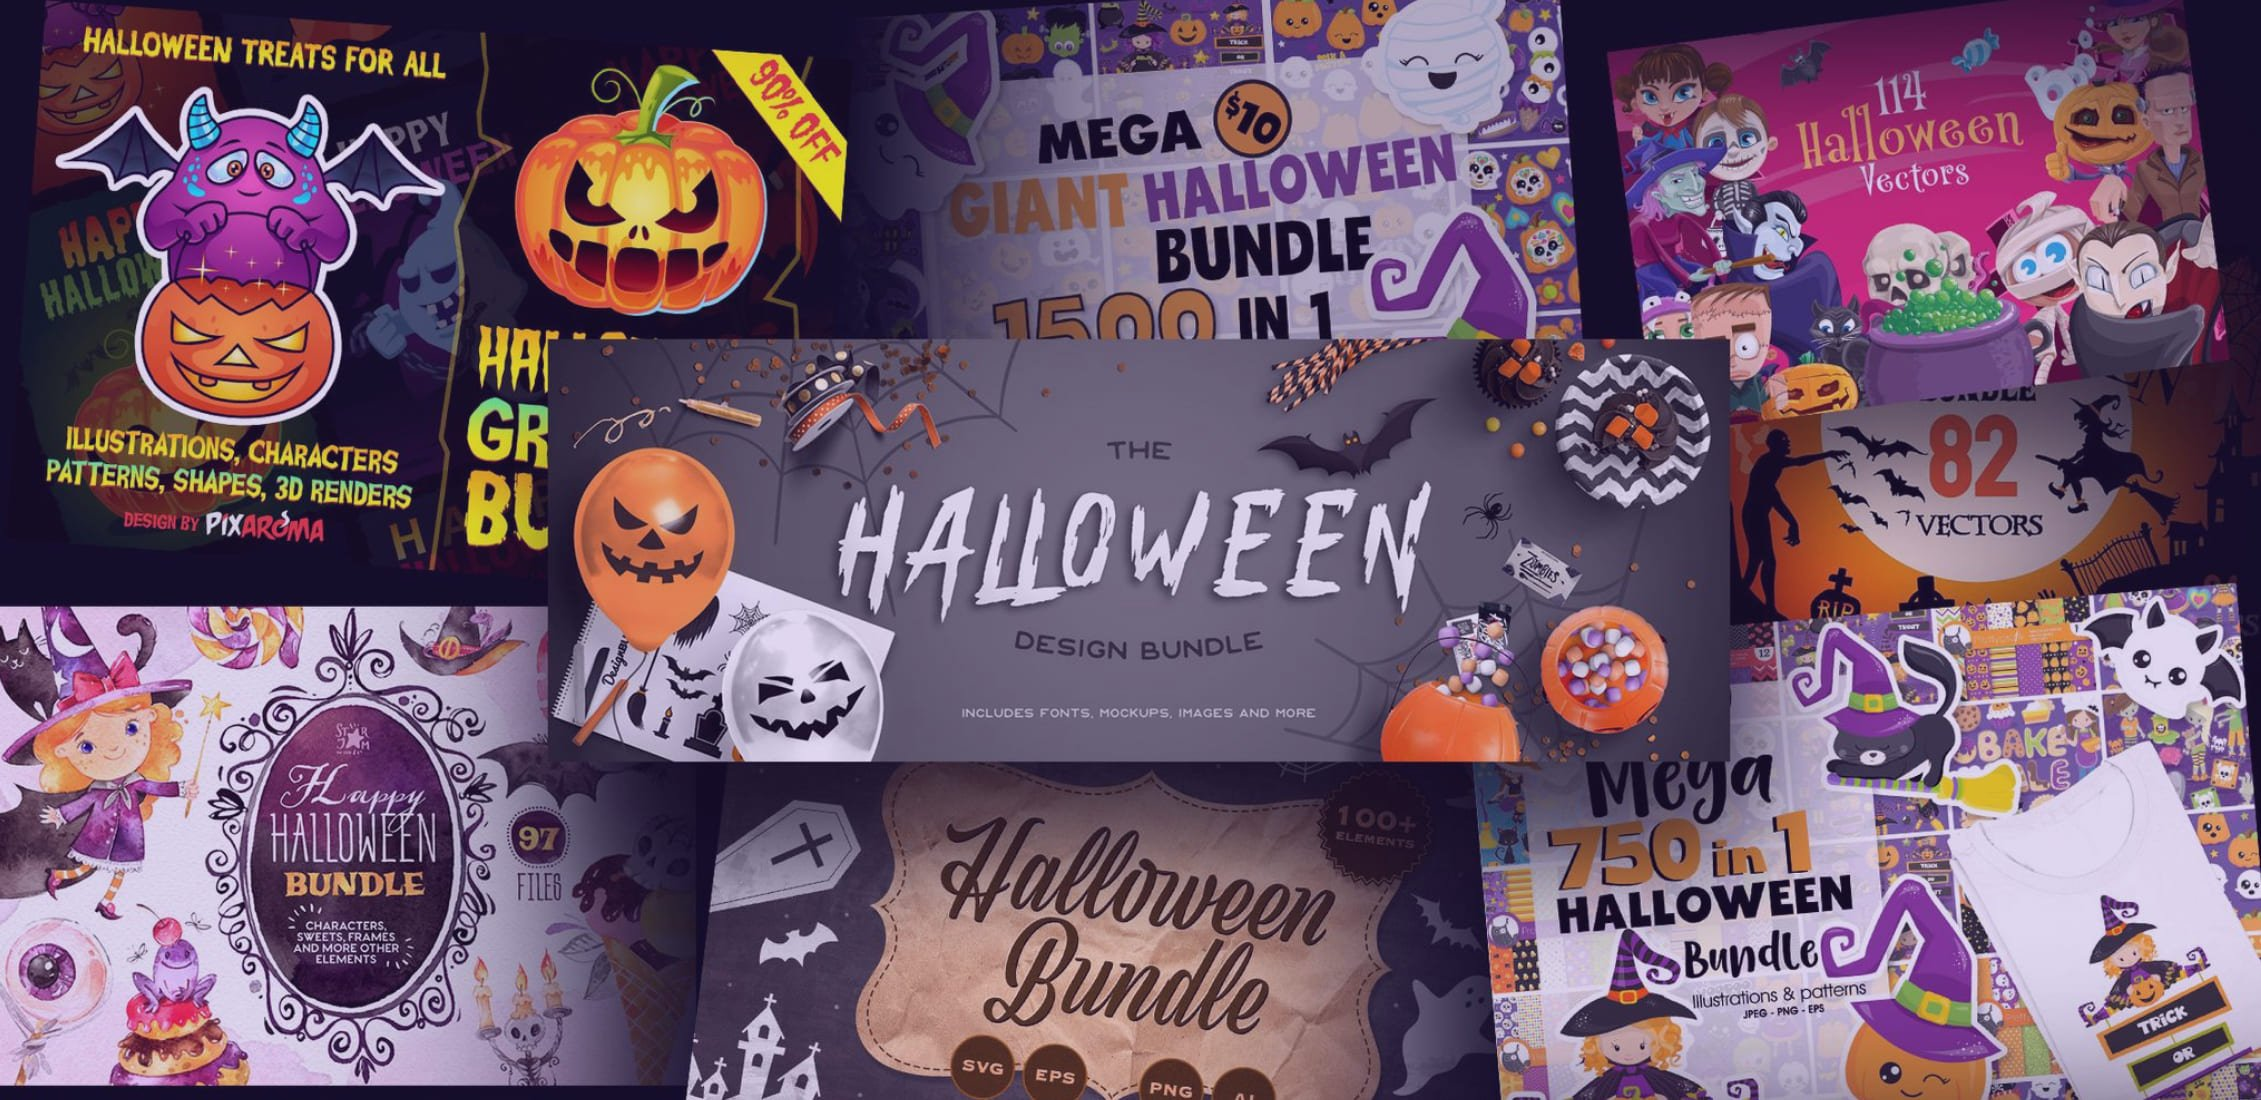 Thanksgiving Cards 2020: 60 Cards to Surprise Your Loved Ones + 30 Thanksgiving Designs for Creating Custom Cards - halloween design bundles